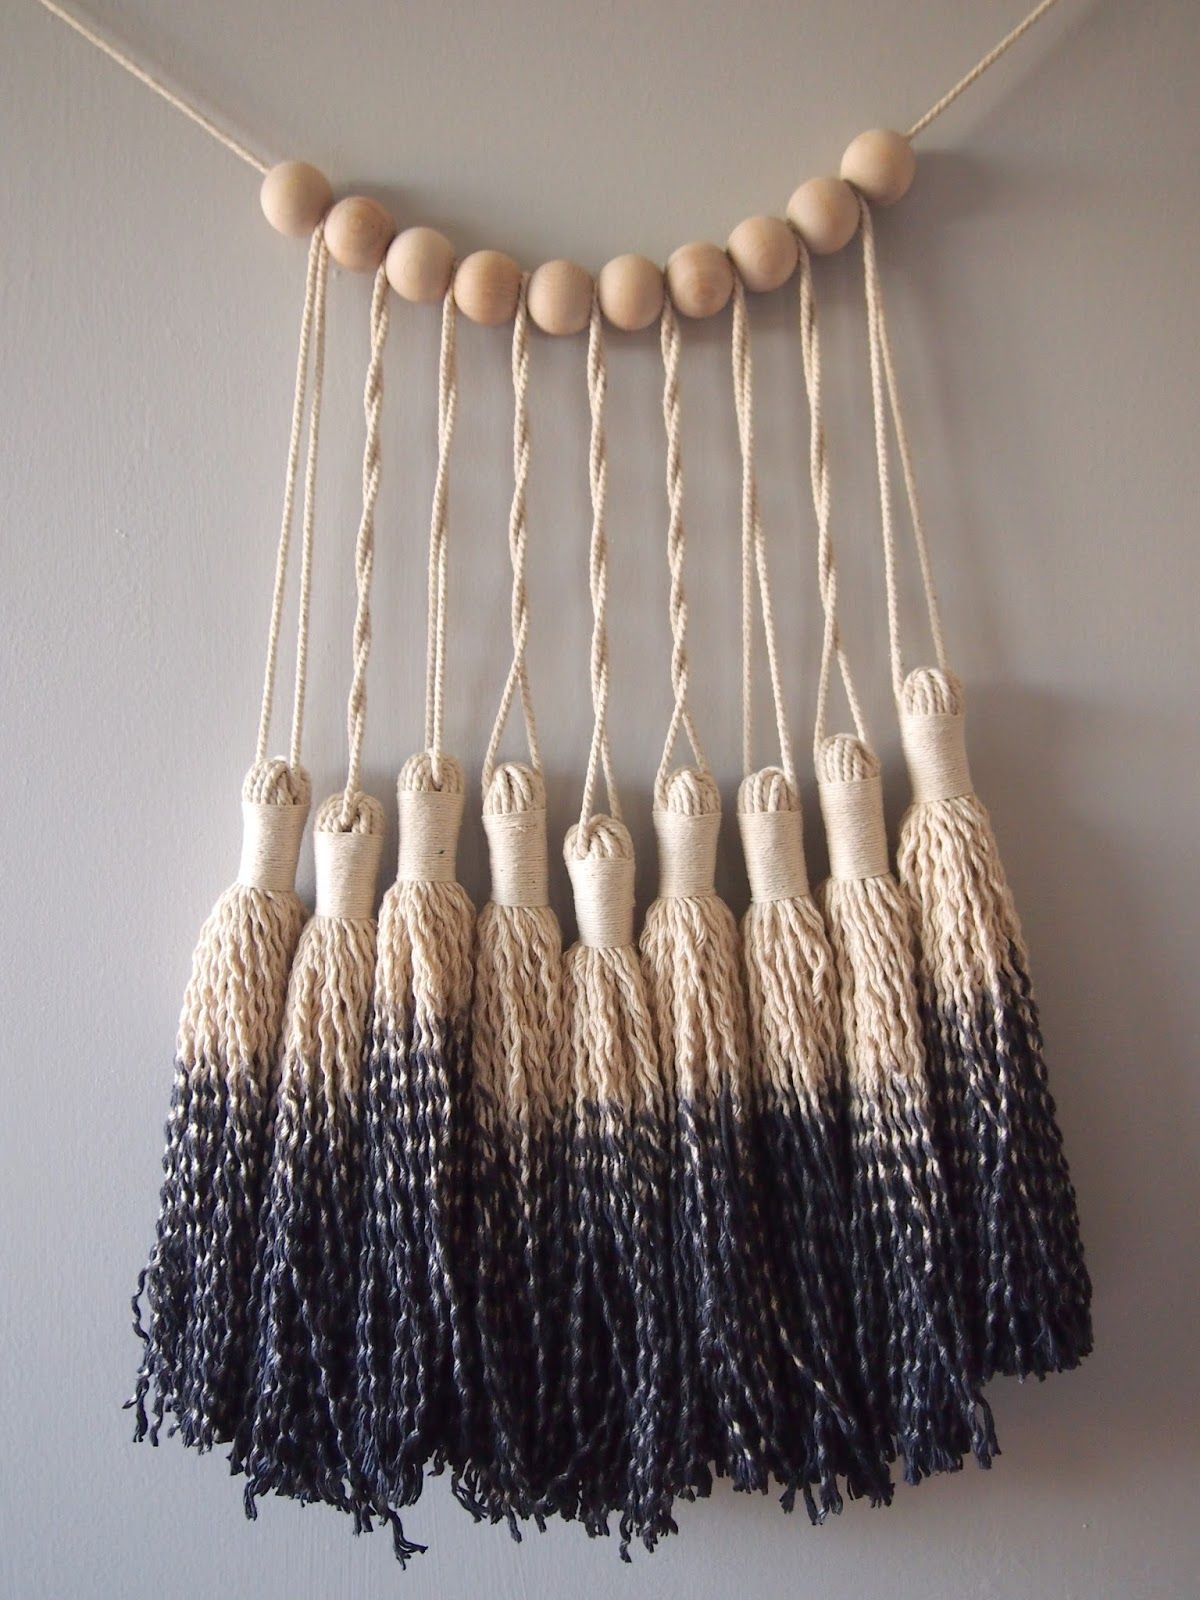 Between upcycled DIY fabric projects and intricate, upscale creations, these 23 rad tassel wall hangings bring the party to any space.